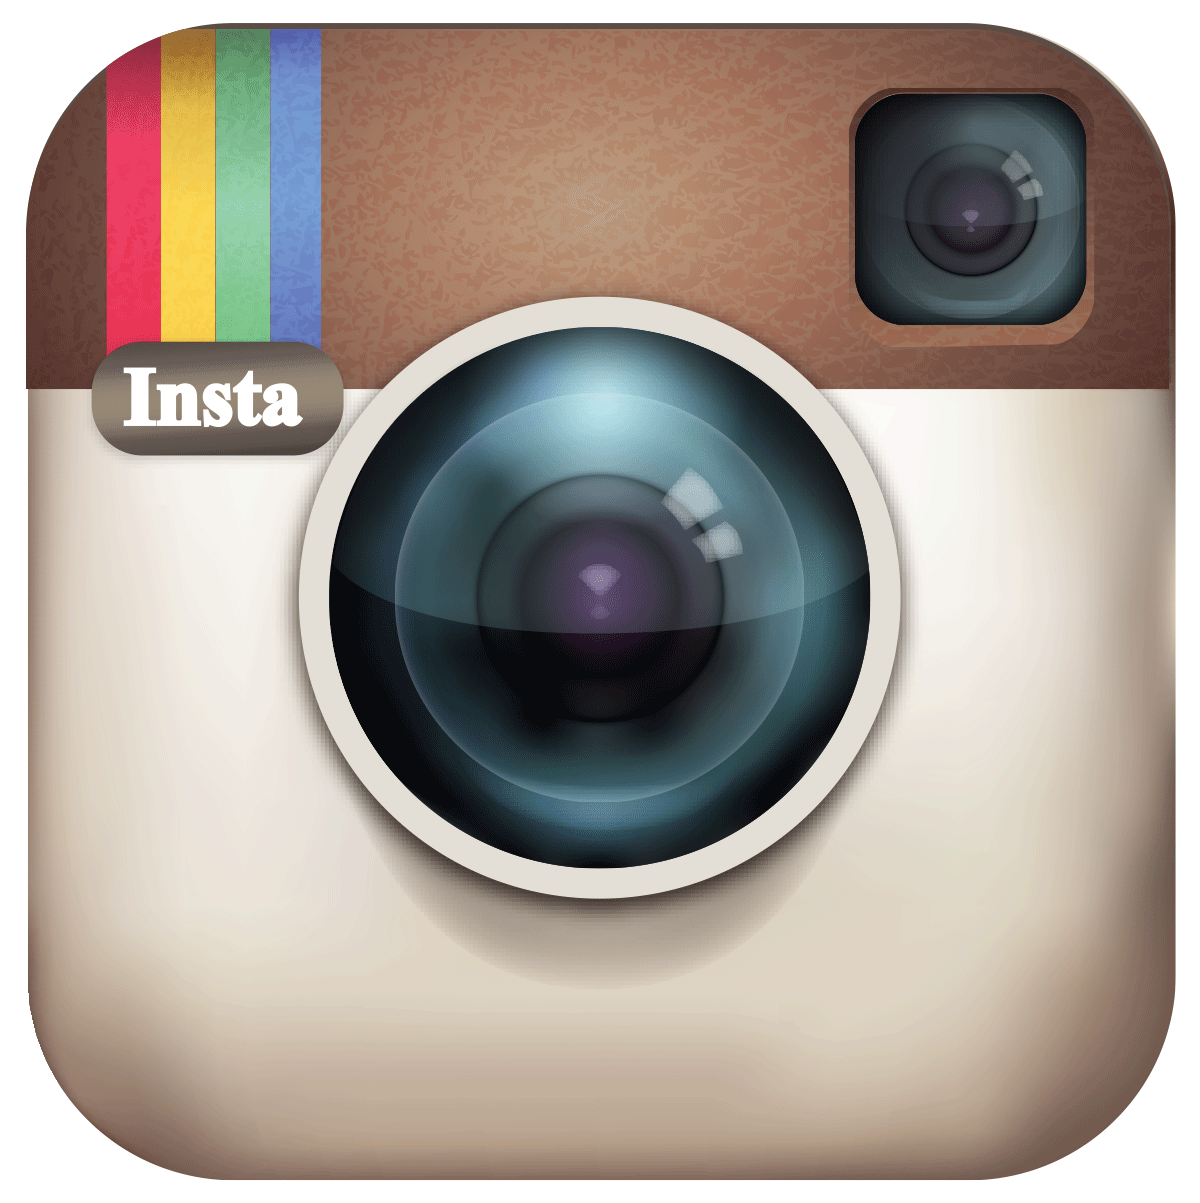 Kline Scott Visco Commercial Real Estate on Instagram